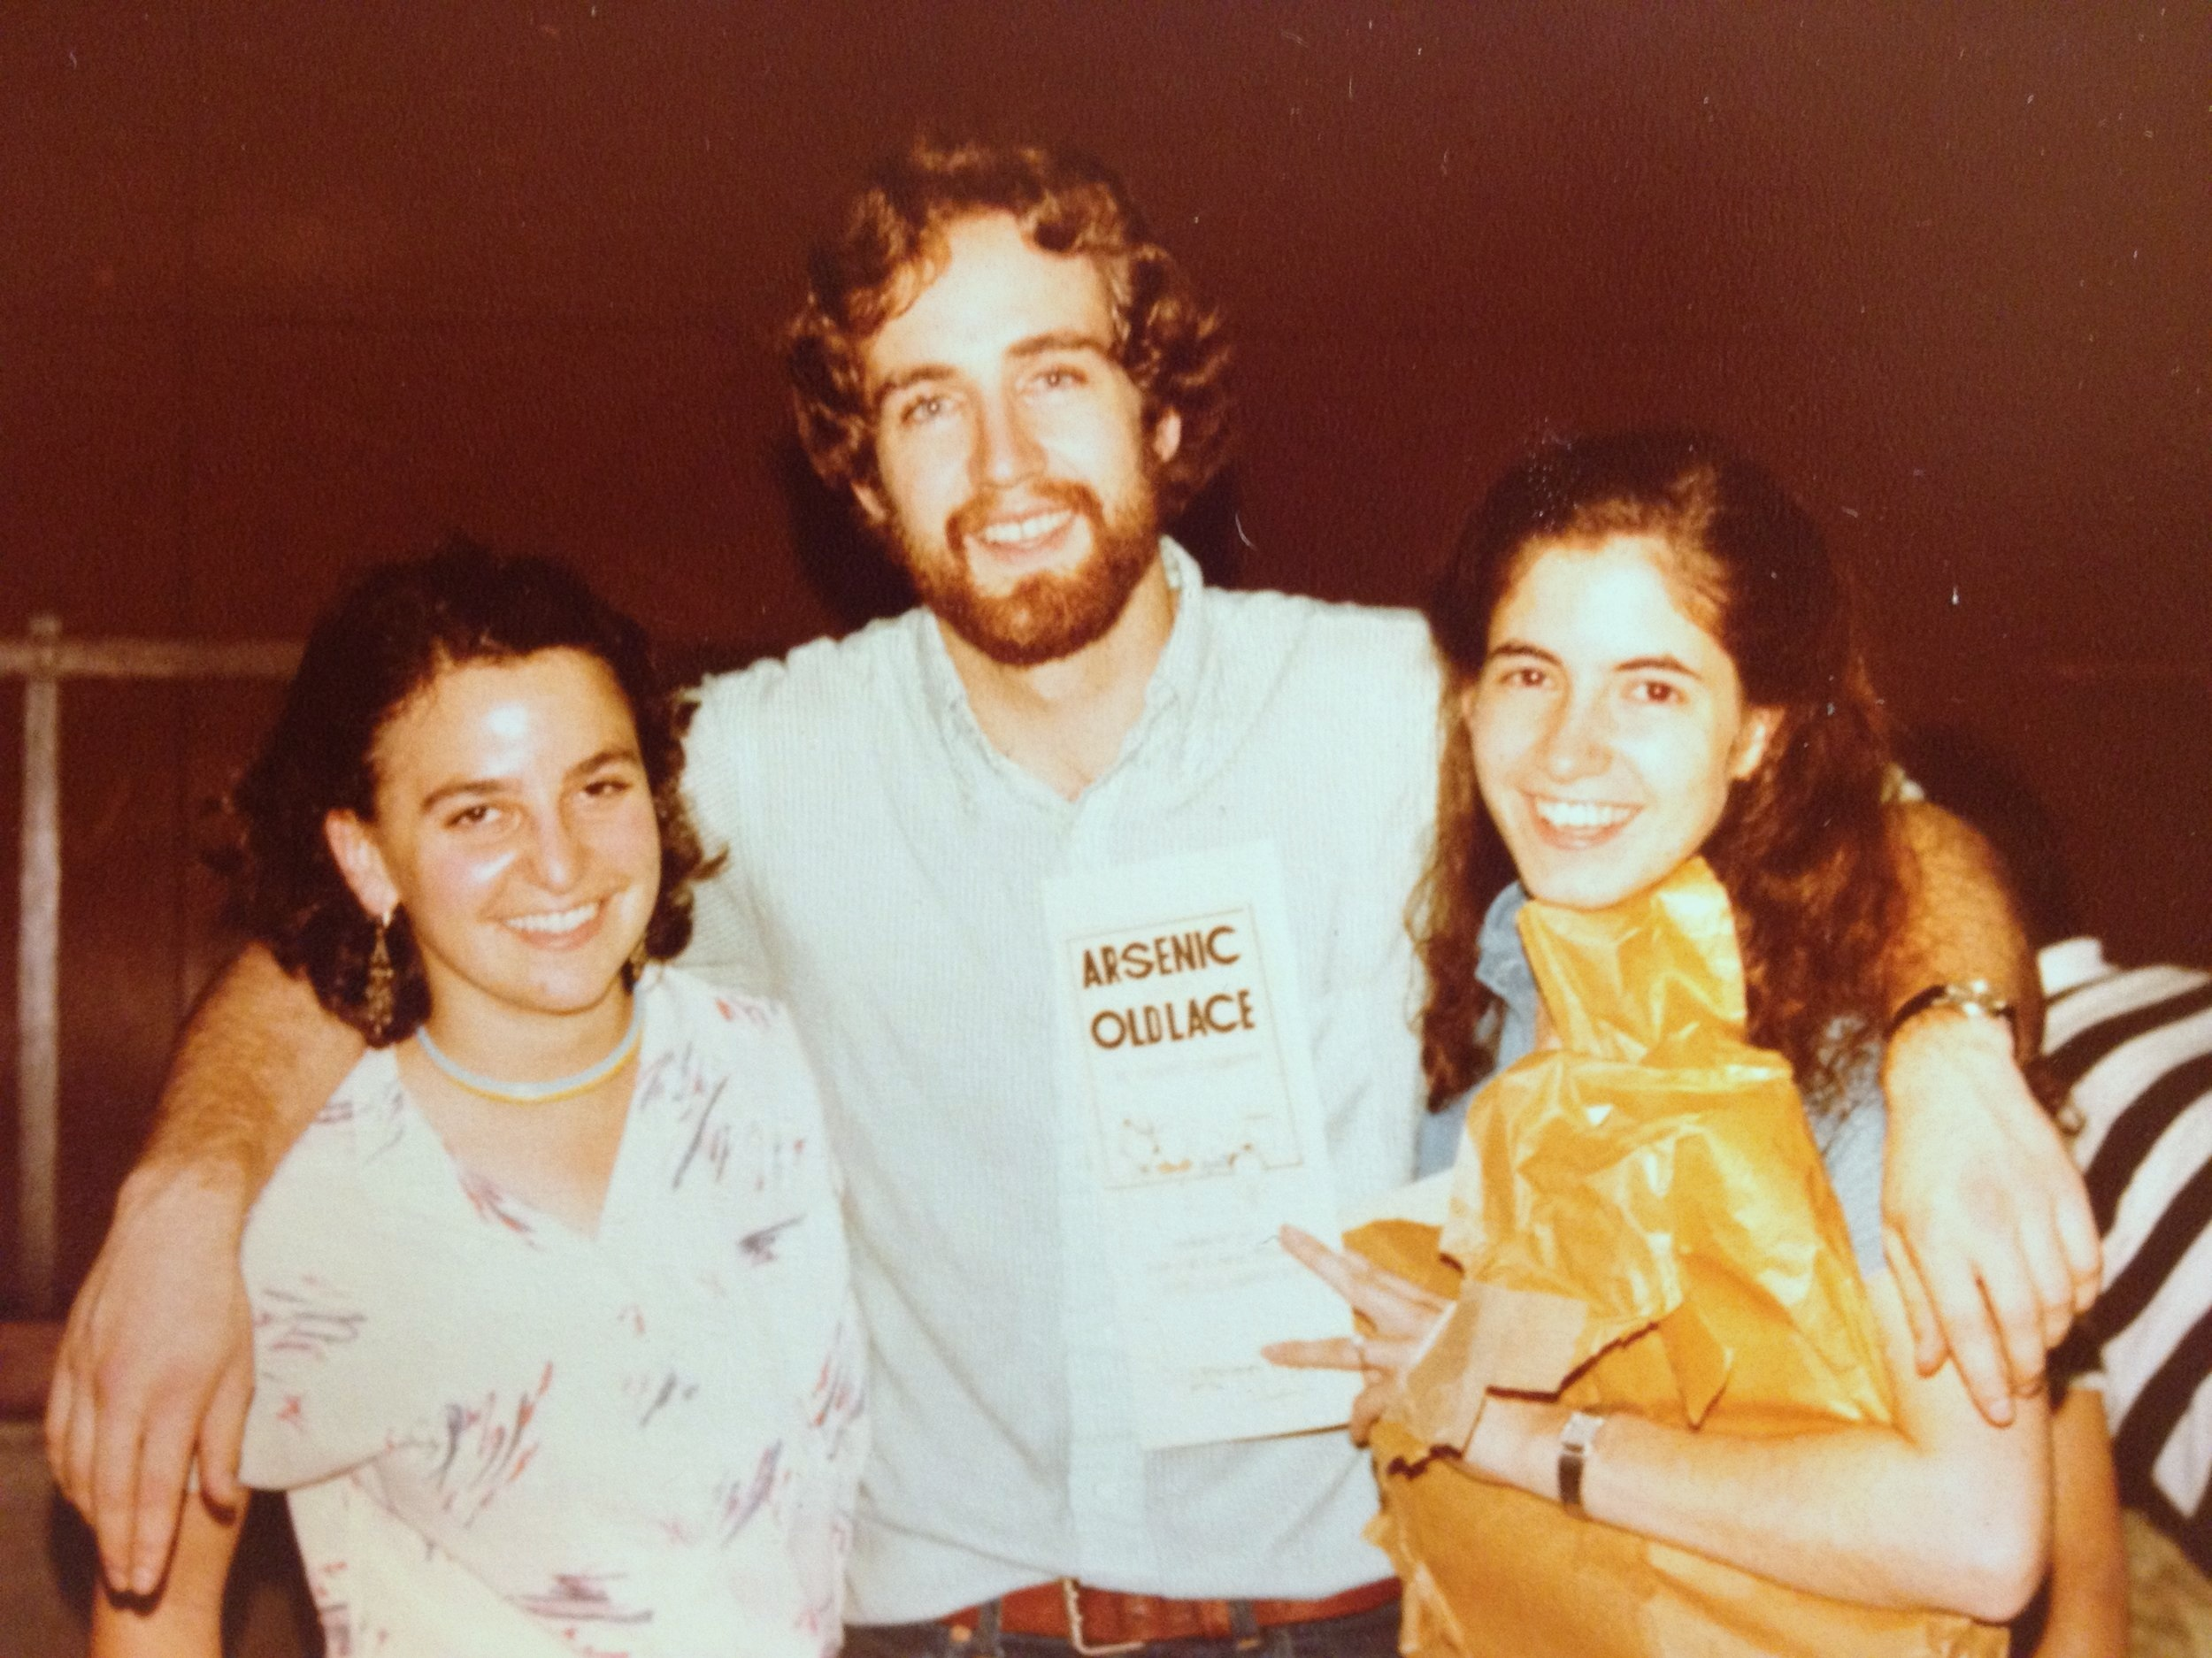 Douglas Ferguson (middle) with former fellows Katherine Sandweiss (left) and Mary Gwen Wheeler (right) at their production of  Arsenic and Old Lace  in 1981 with students from New Asia College of The Chinese University of Hong Kong.